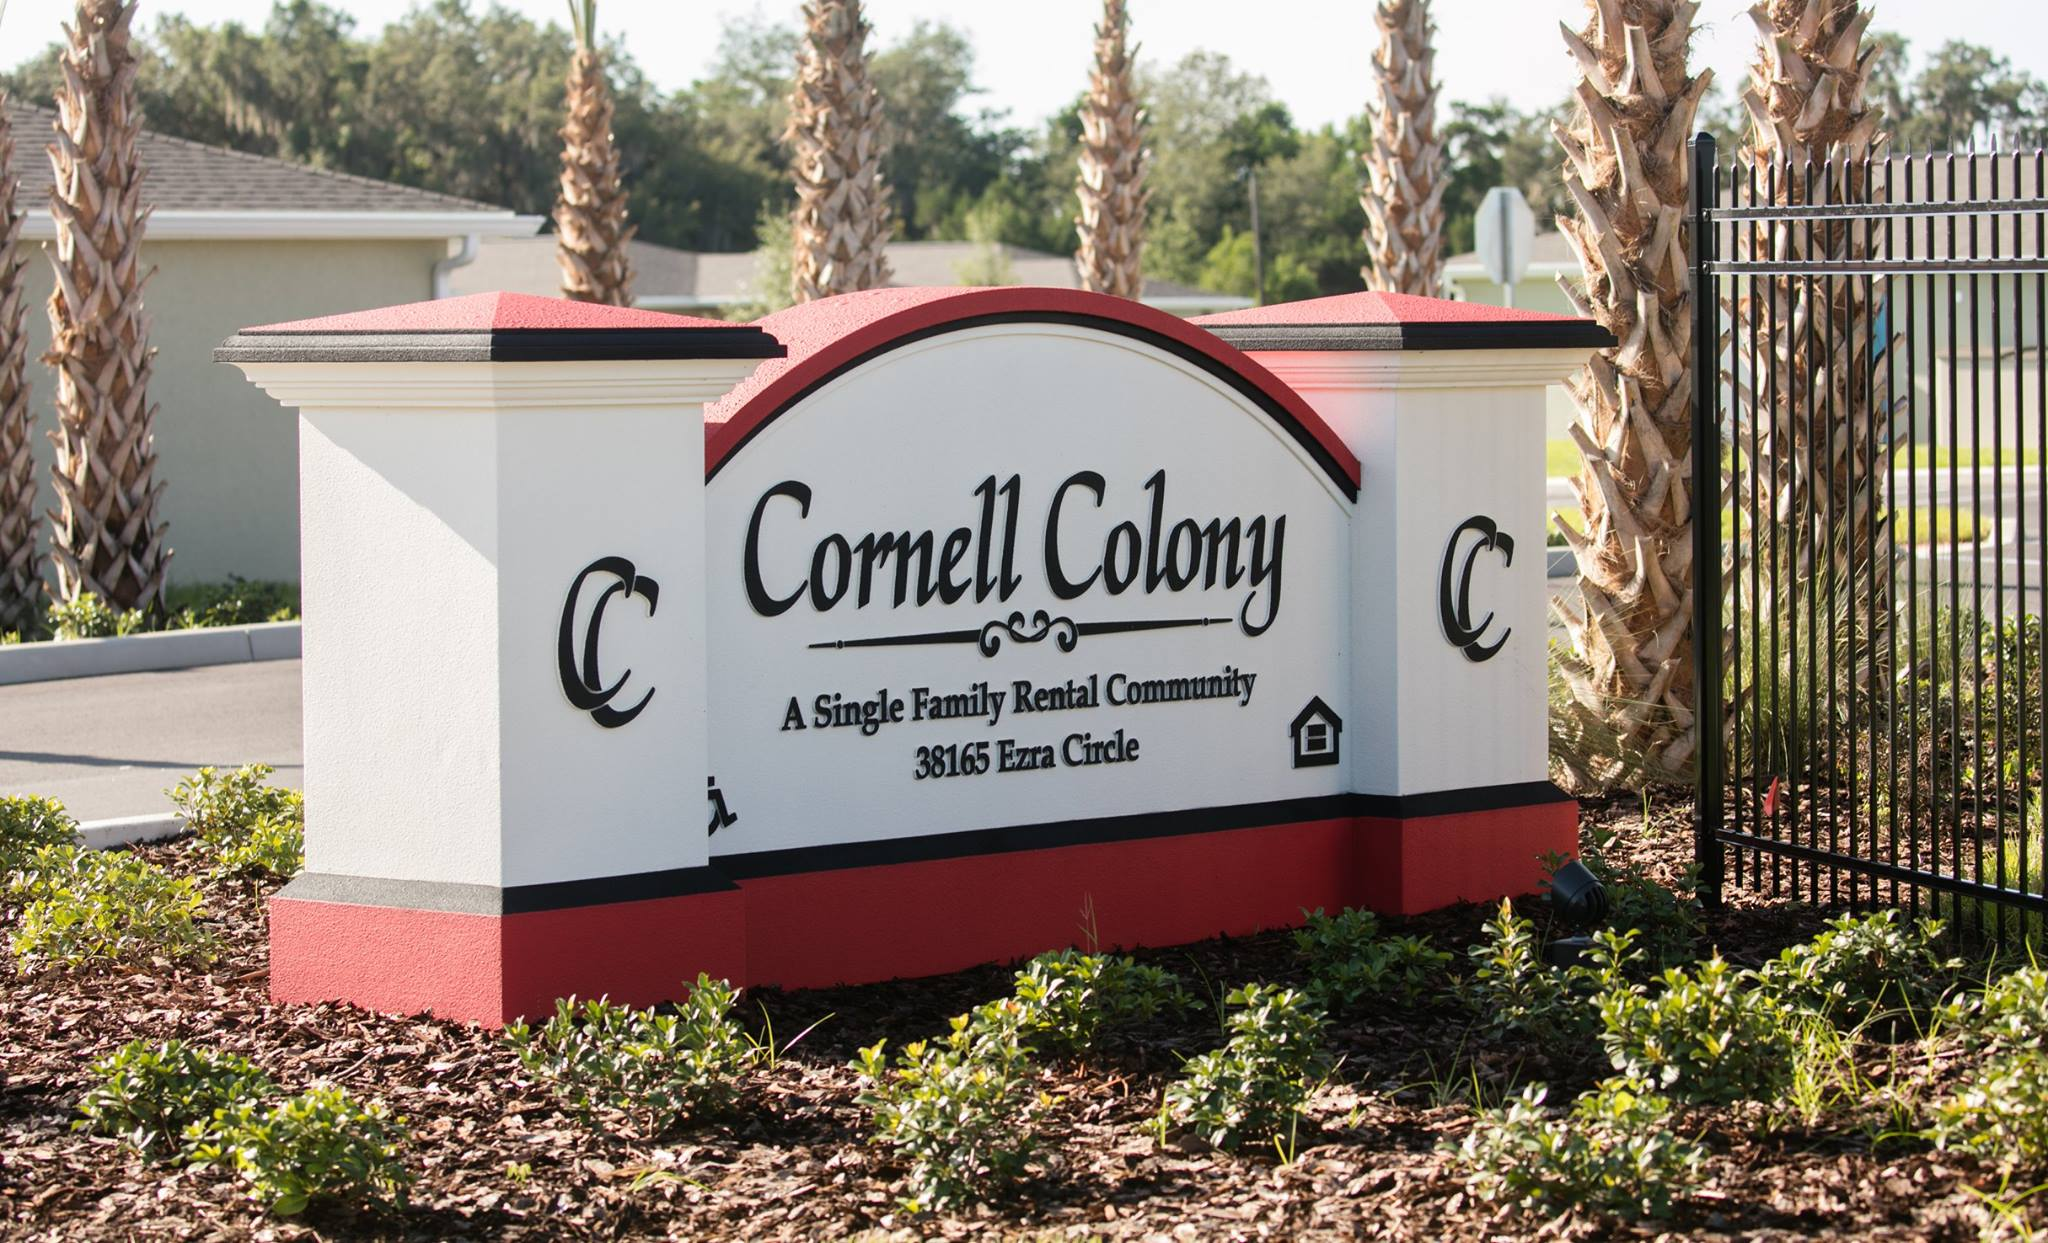 Cornell Colony New Housing Development Project Central